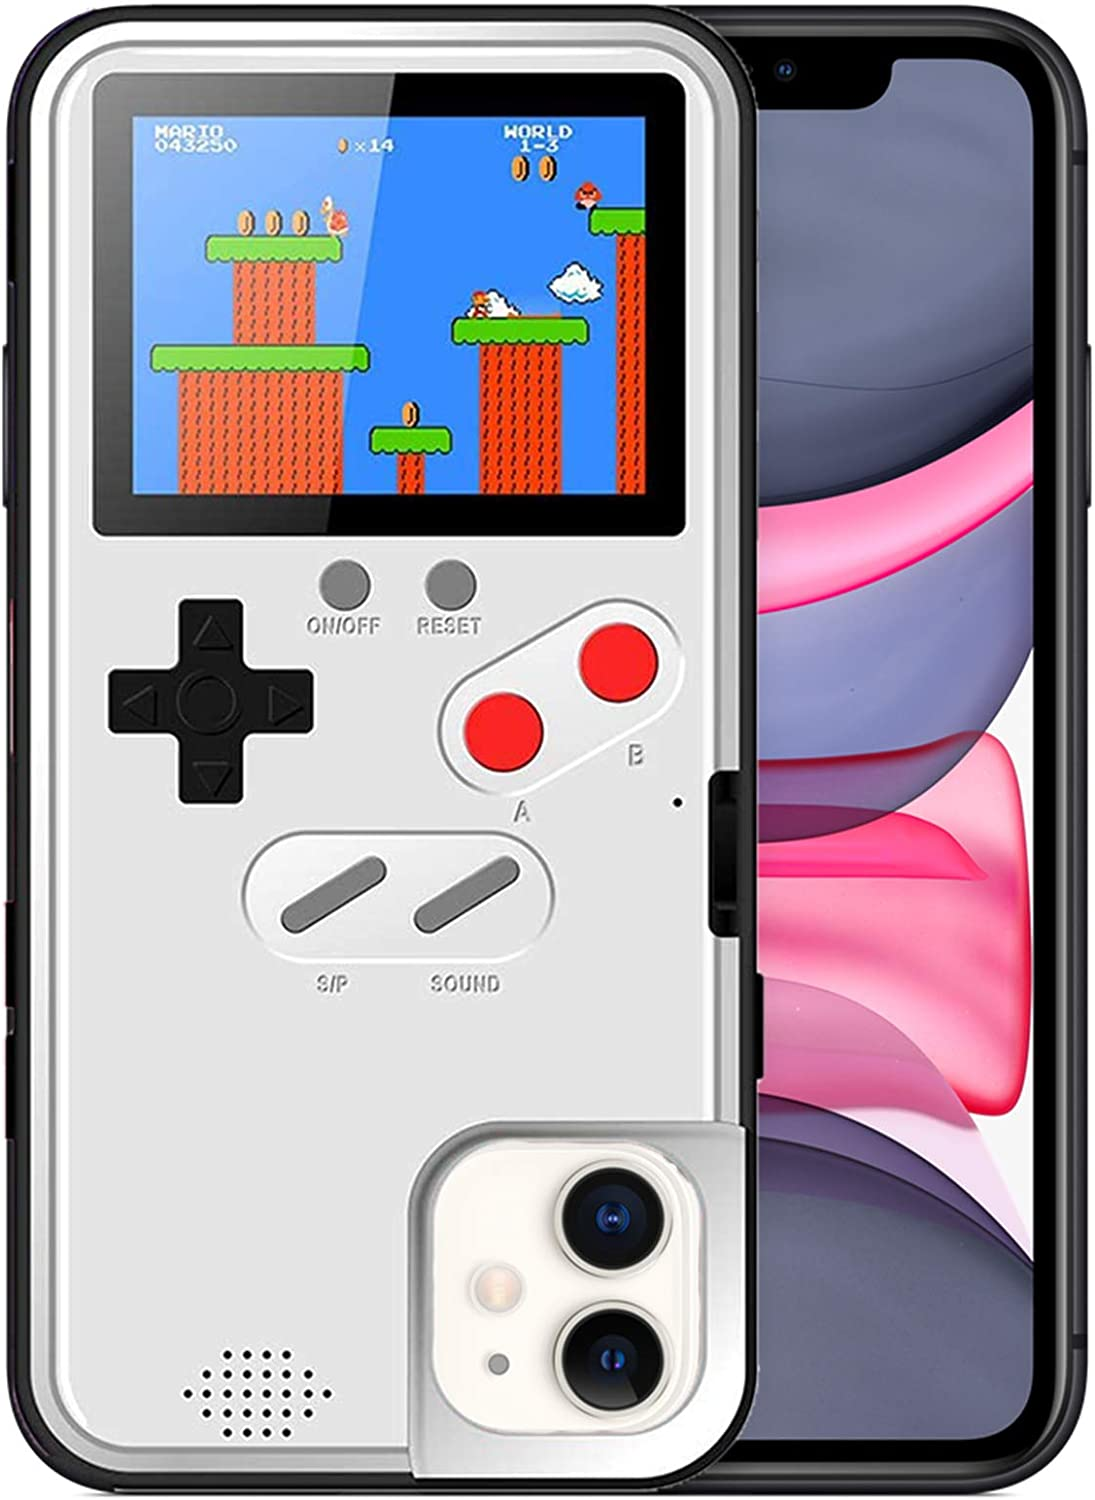 Gameboy Case for iPhone XR, Chu9 Retro 3DShockproofGameboy Cover Case with 36 Classic Games, Handheld Color Screen Playable Video Game Console Case for iPhone (White,iPhone XR)